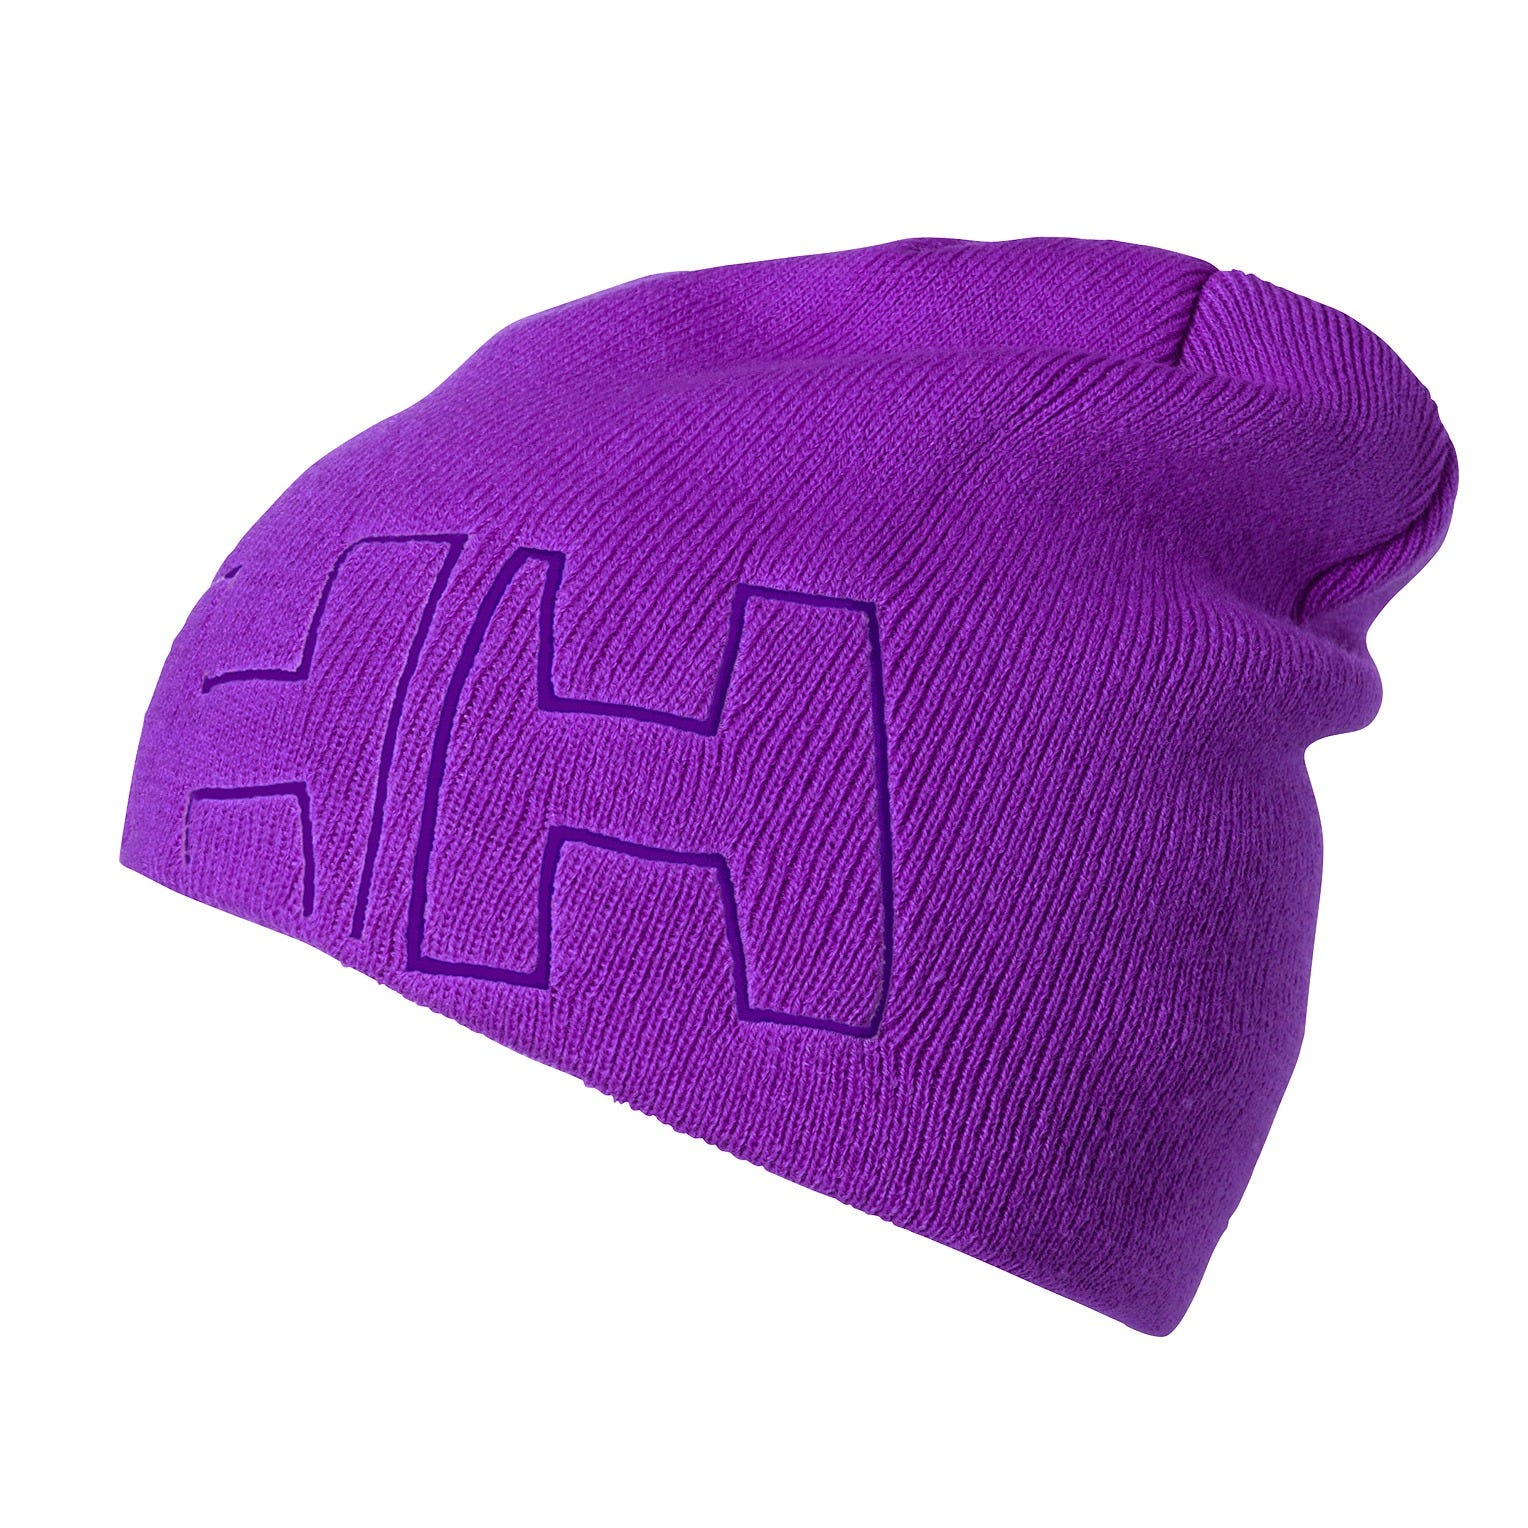 Helly-Hansen Kids /& Baby K Outline Beanie Outline Knitted Hh Iconic Logo Brand Beanie